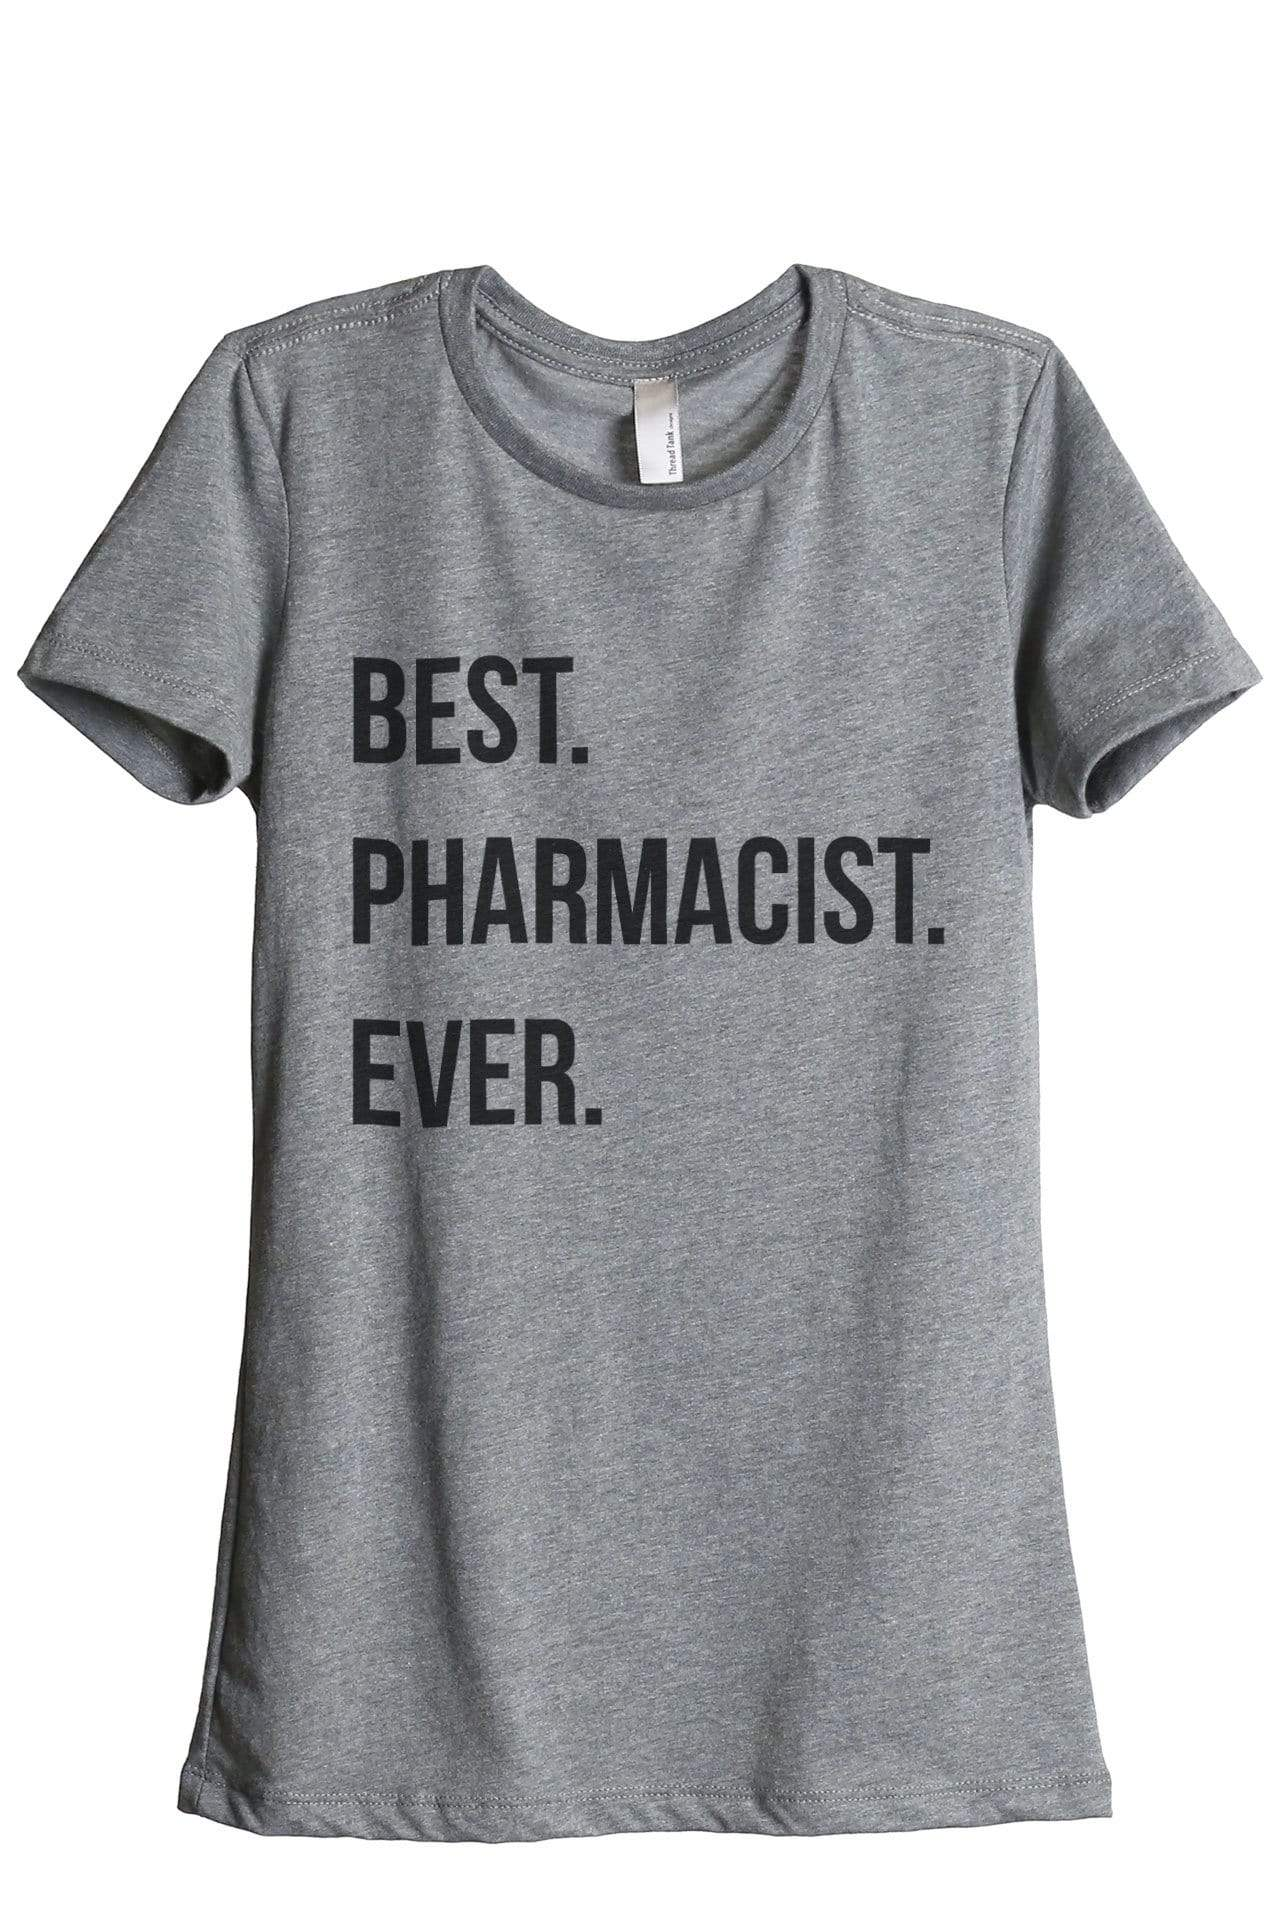 Best Pharmacist Ever - Thread Tank | Stories You Can Wear | T-Shirts, Tank Tops and Sweatshirts